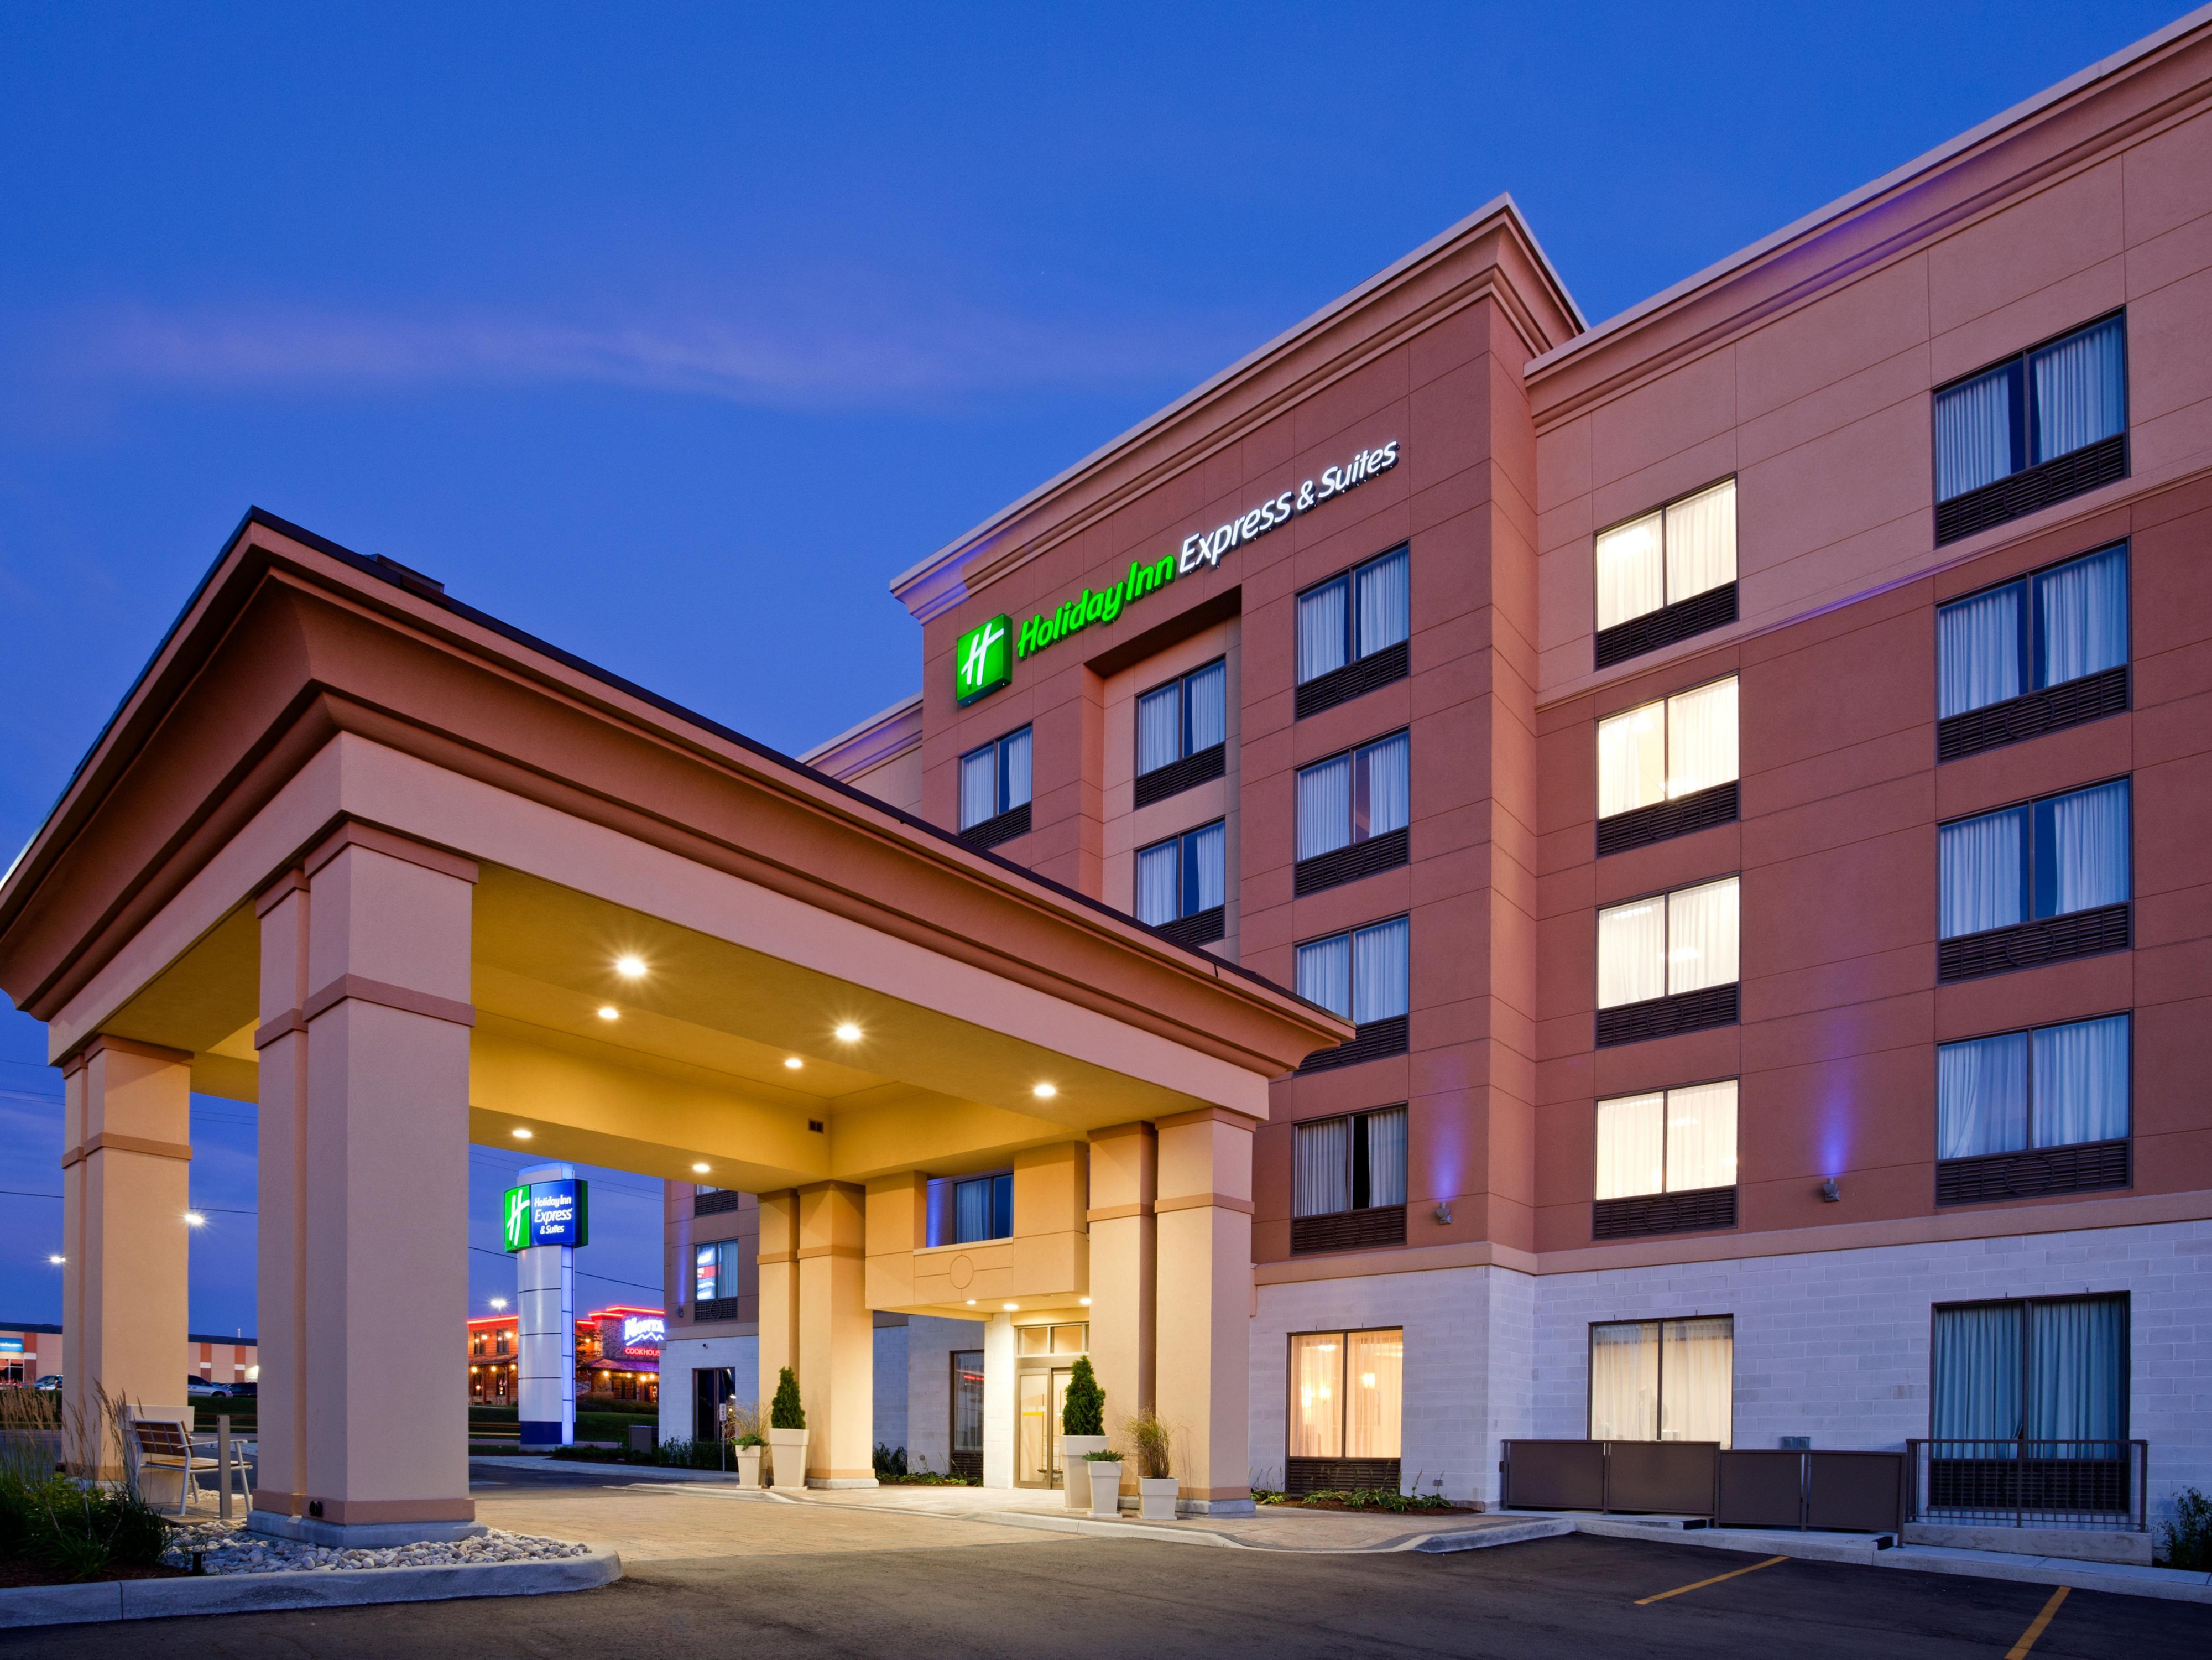 Holiday inn express suites woodstock south hotel by ihg reheart Images